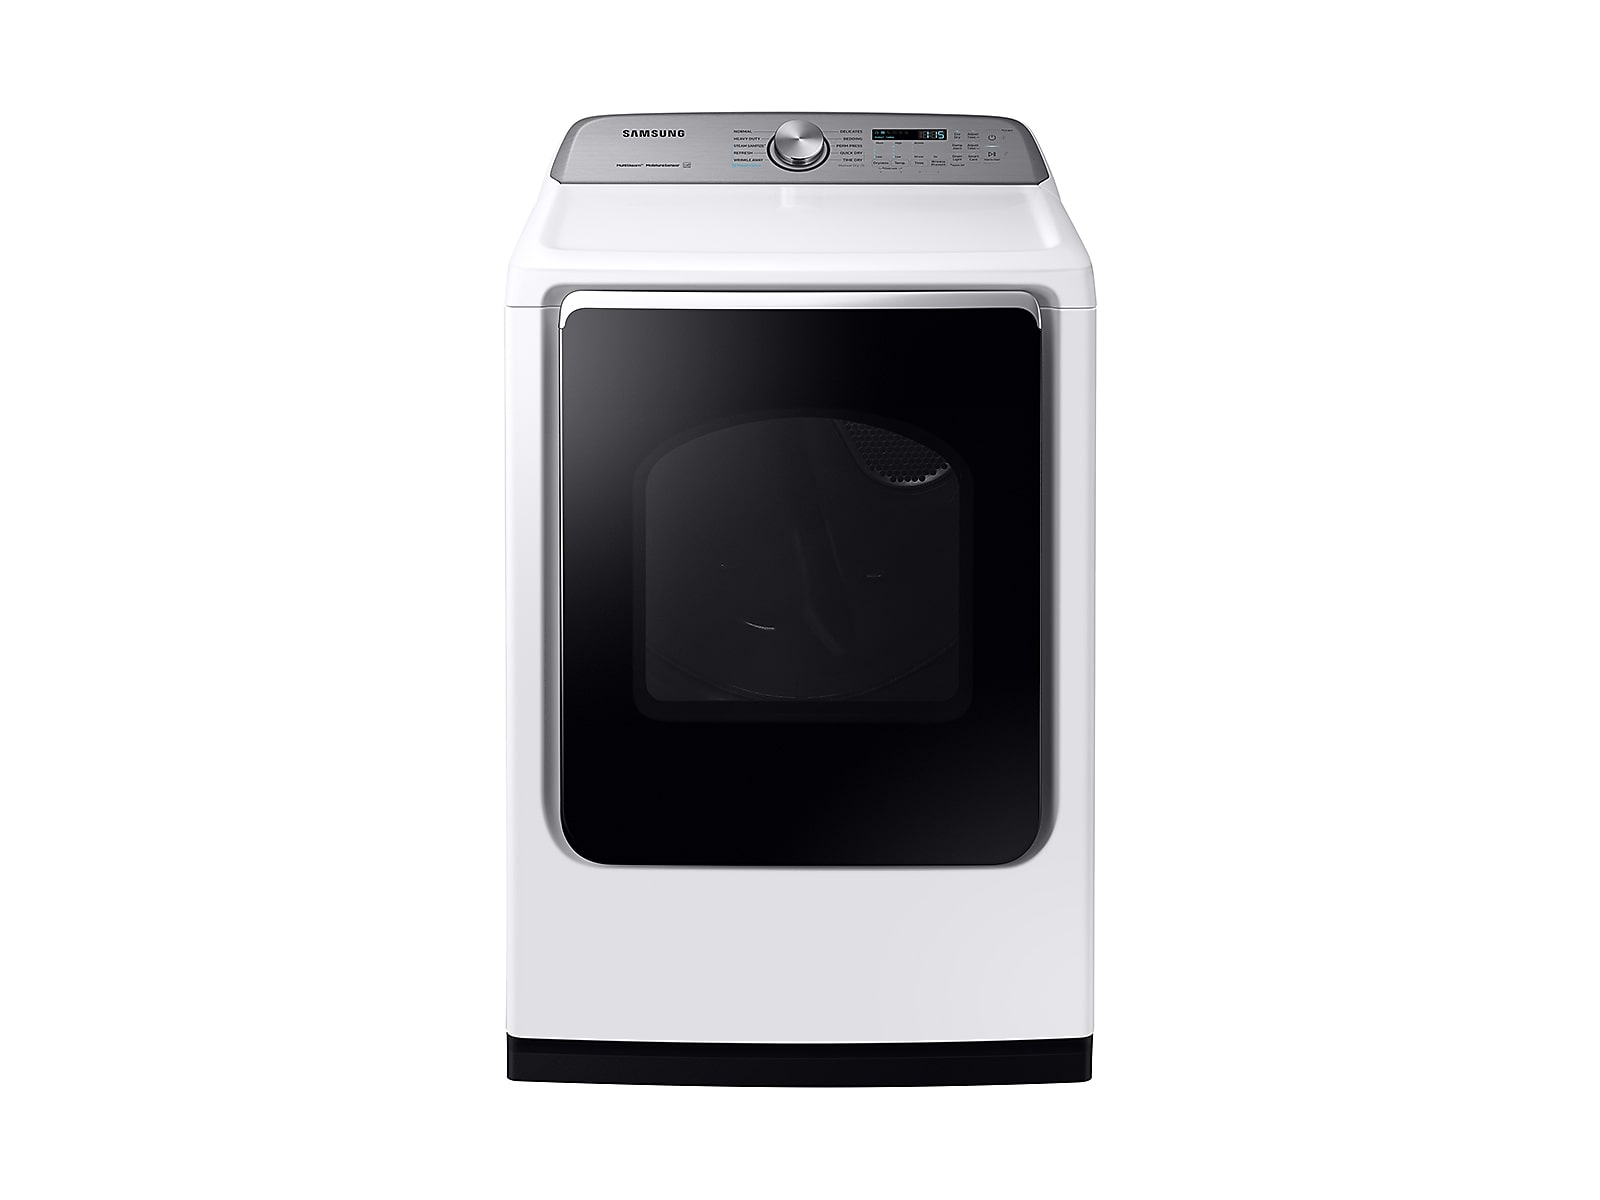 Samsung coupon: Samsung DV7200 7.4 cu. ft. Gas Dryer with Steam Sanitize+ in White(DVG54R7200W/A3)